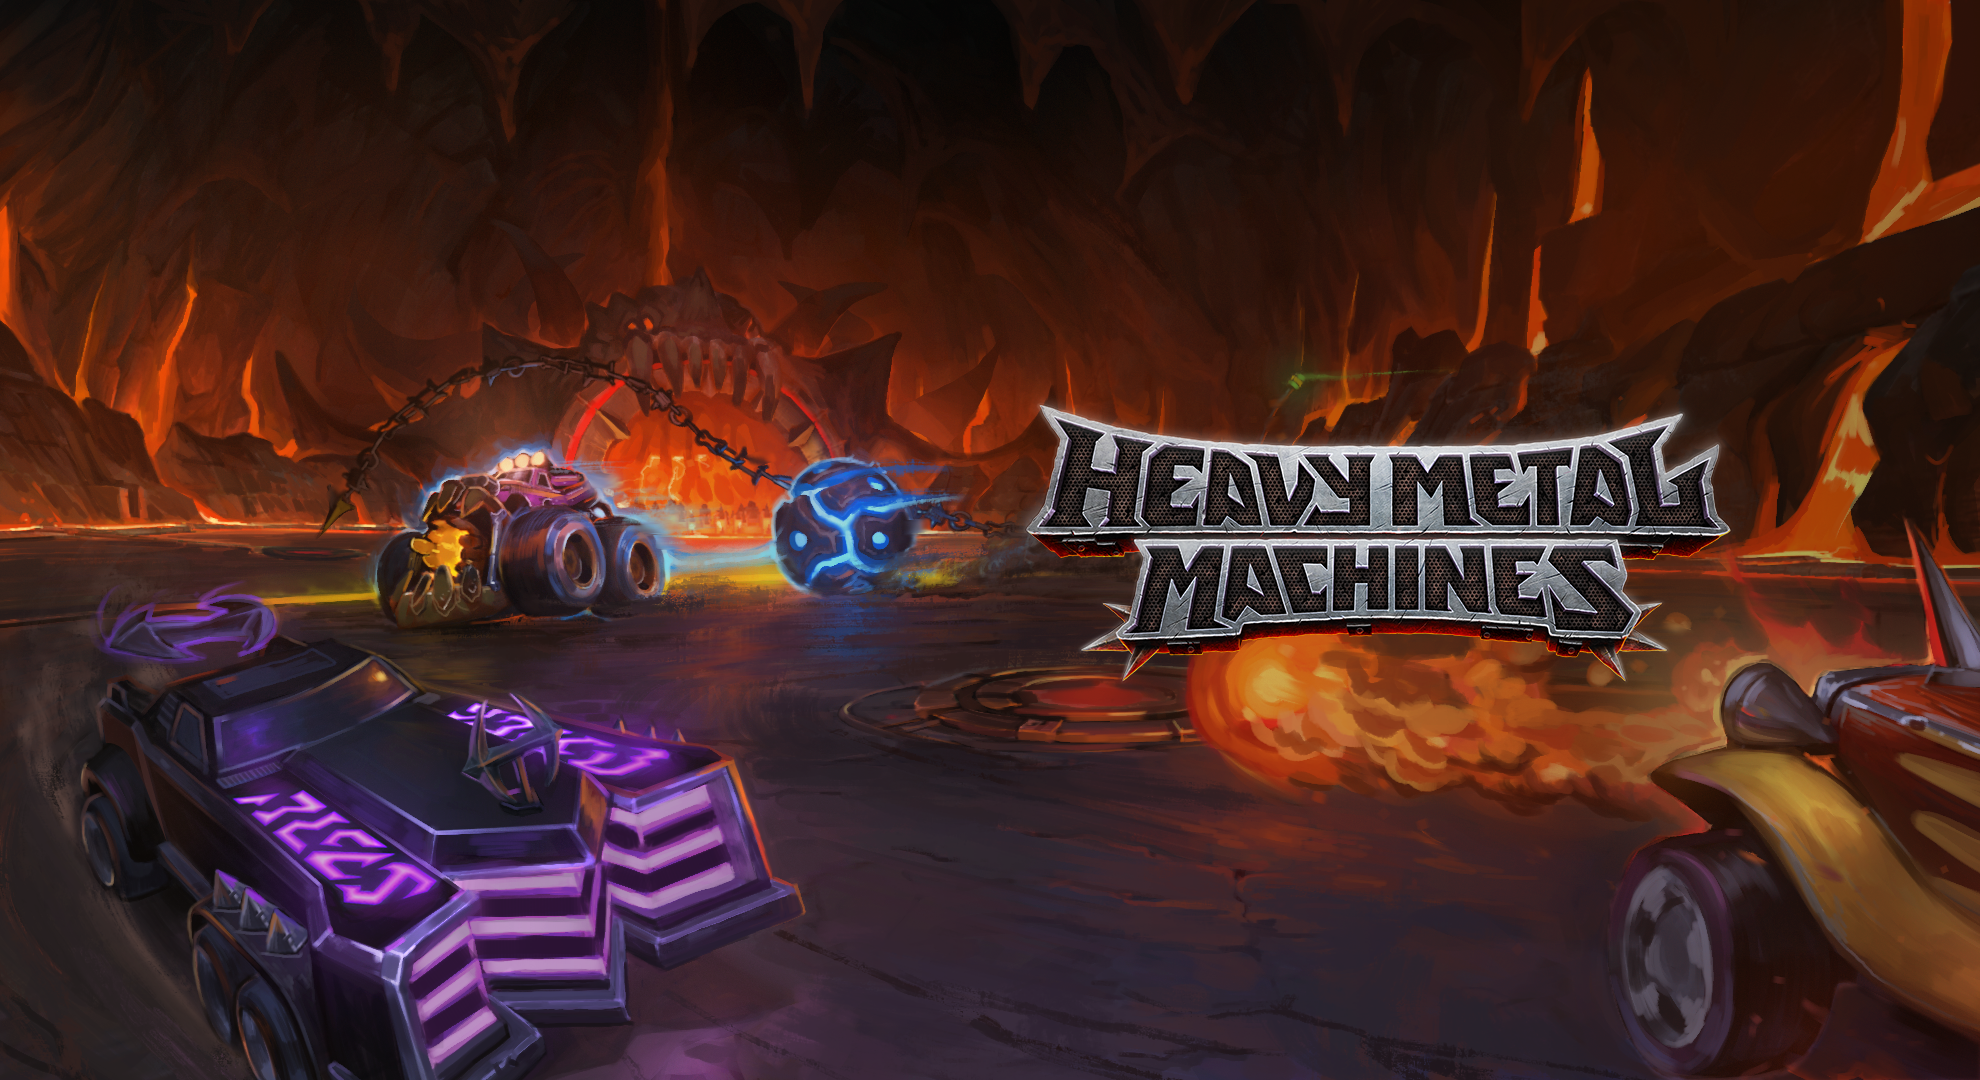 Chasing movement in Heavy Metal Machines